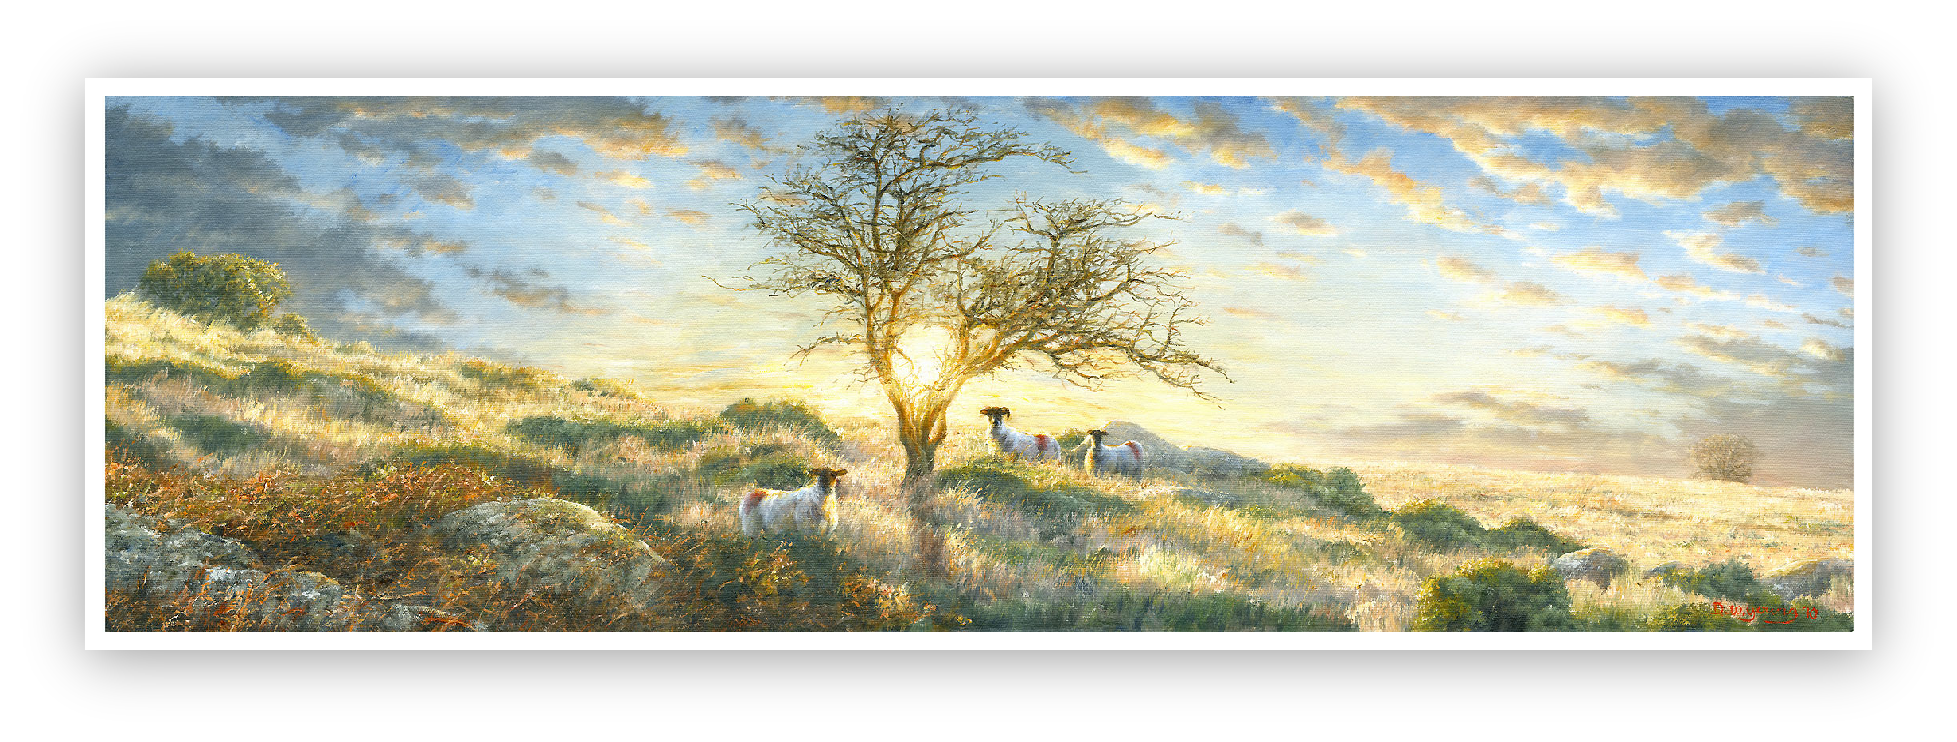 Hawthorn in a Dartmoor landscape painting David William Young